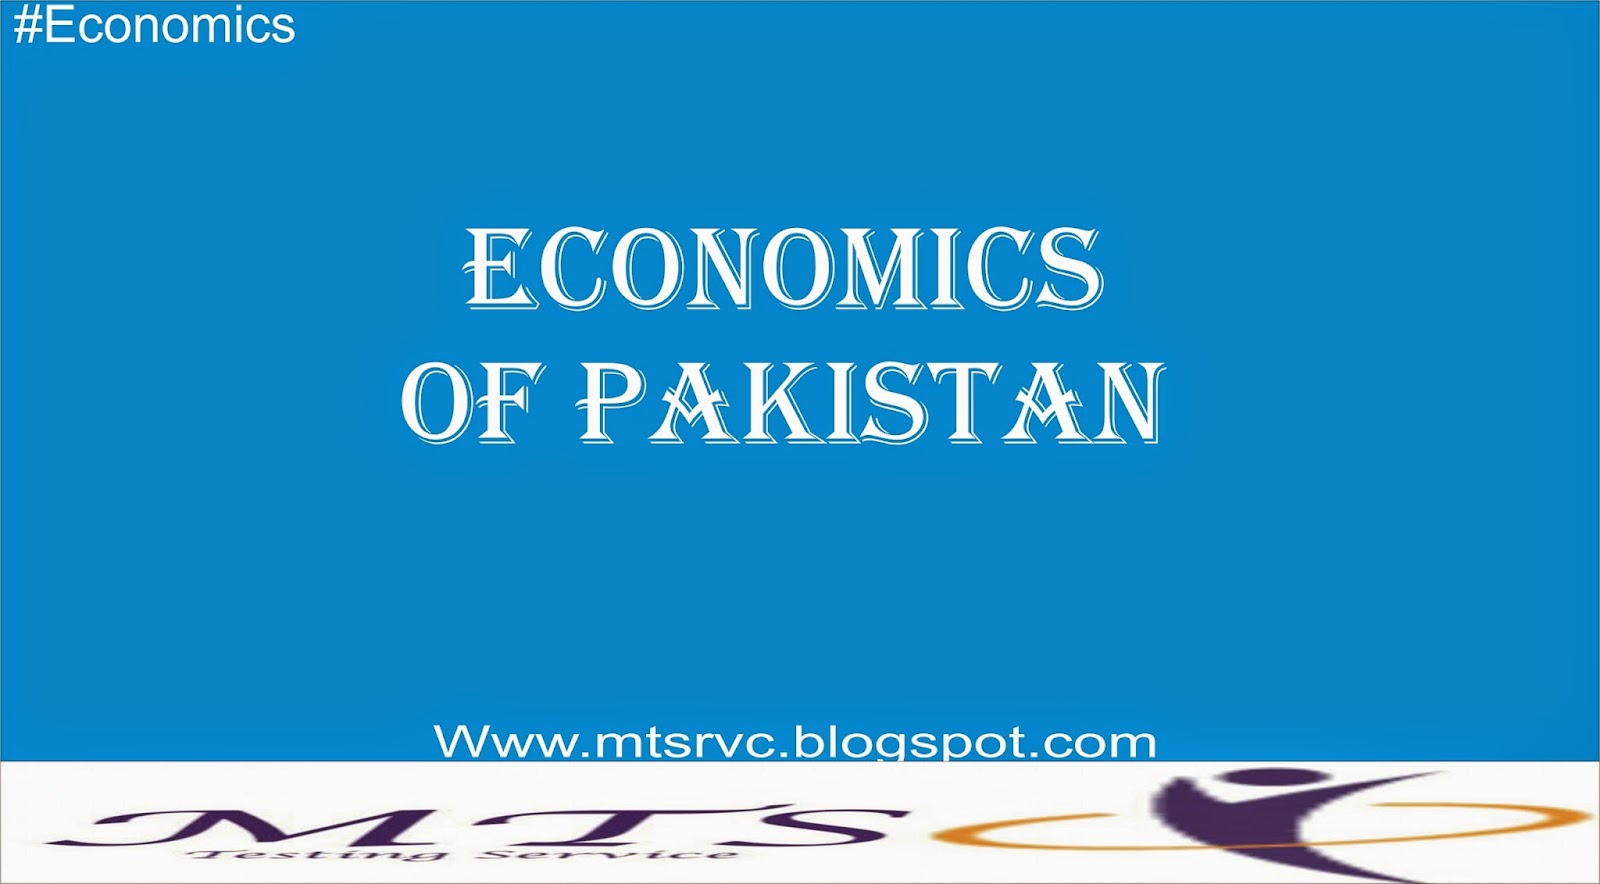 causes of load shedding in pakistan essay Effects of load shedding essay sample while countries in the west move towards enlightenment, pakistan is moving towards darkness the country suffering at the hands of corrupt politicians.